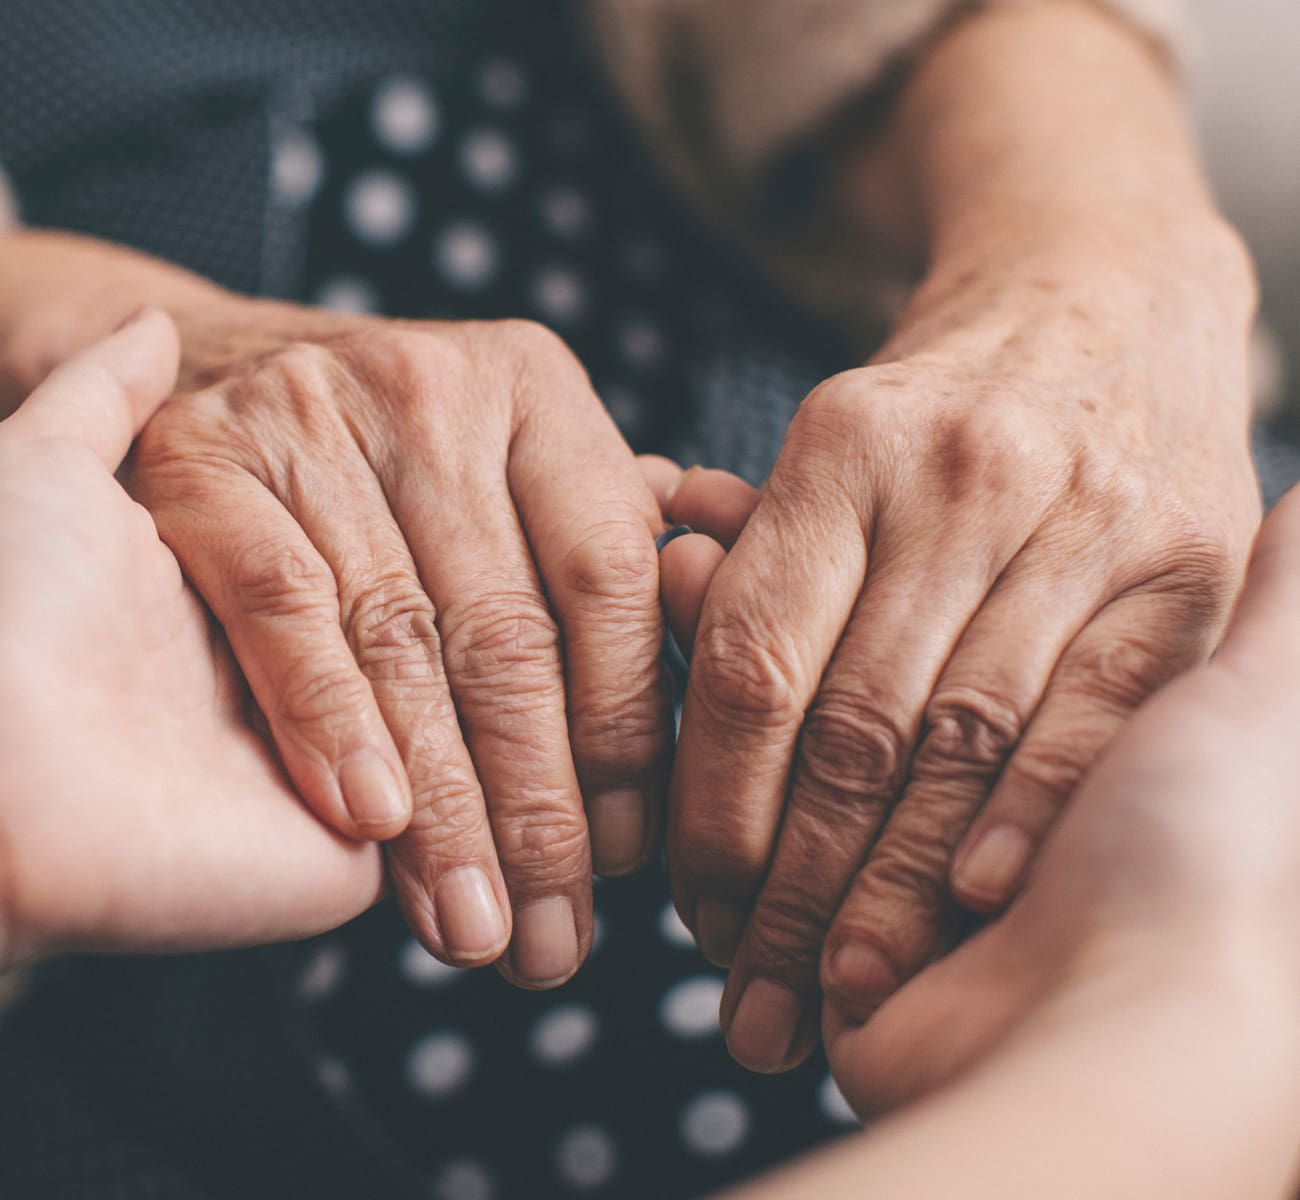 A caretaker holding a resident's hands at Sandpiper Courtyard in Mt. Pleasant, South Carolina